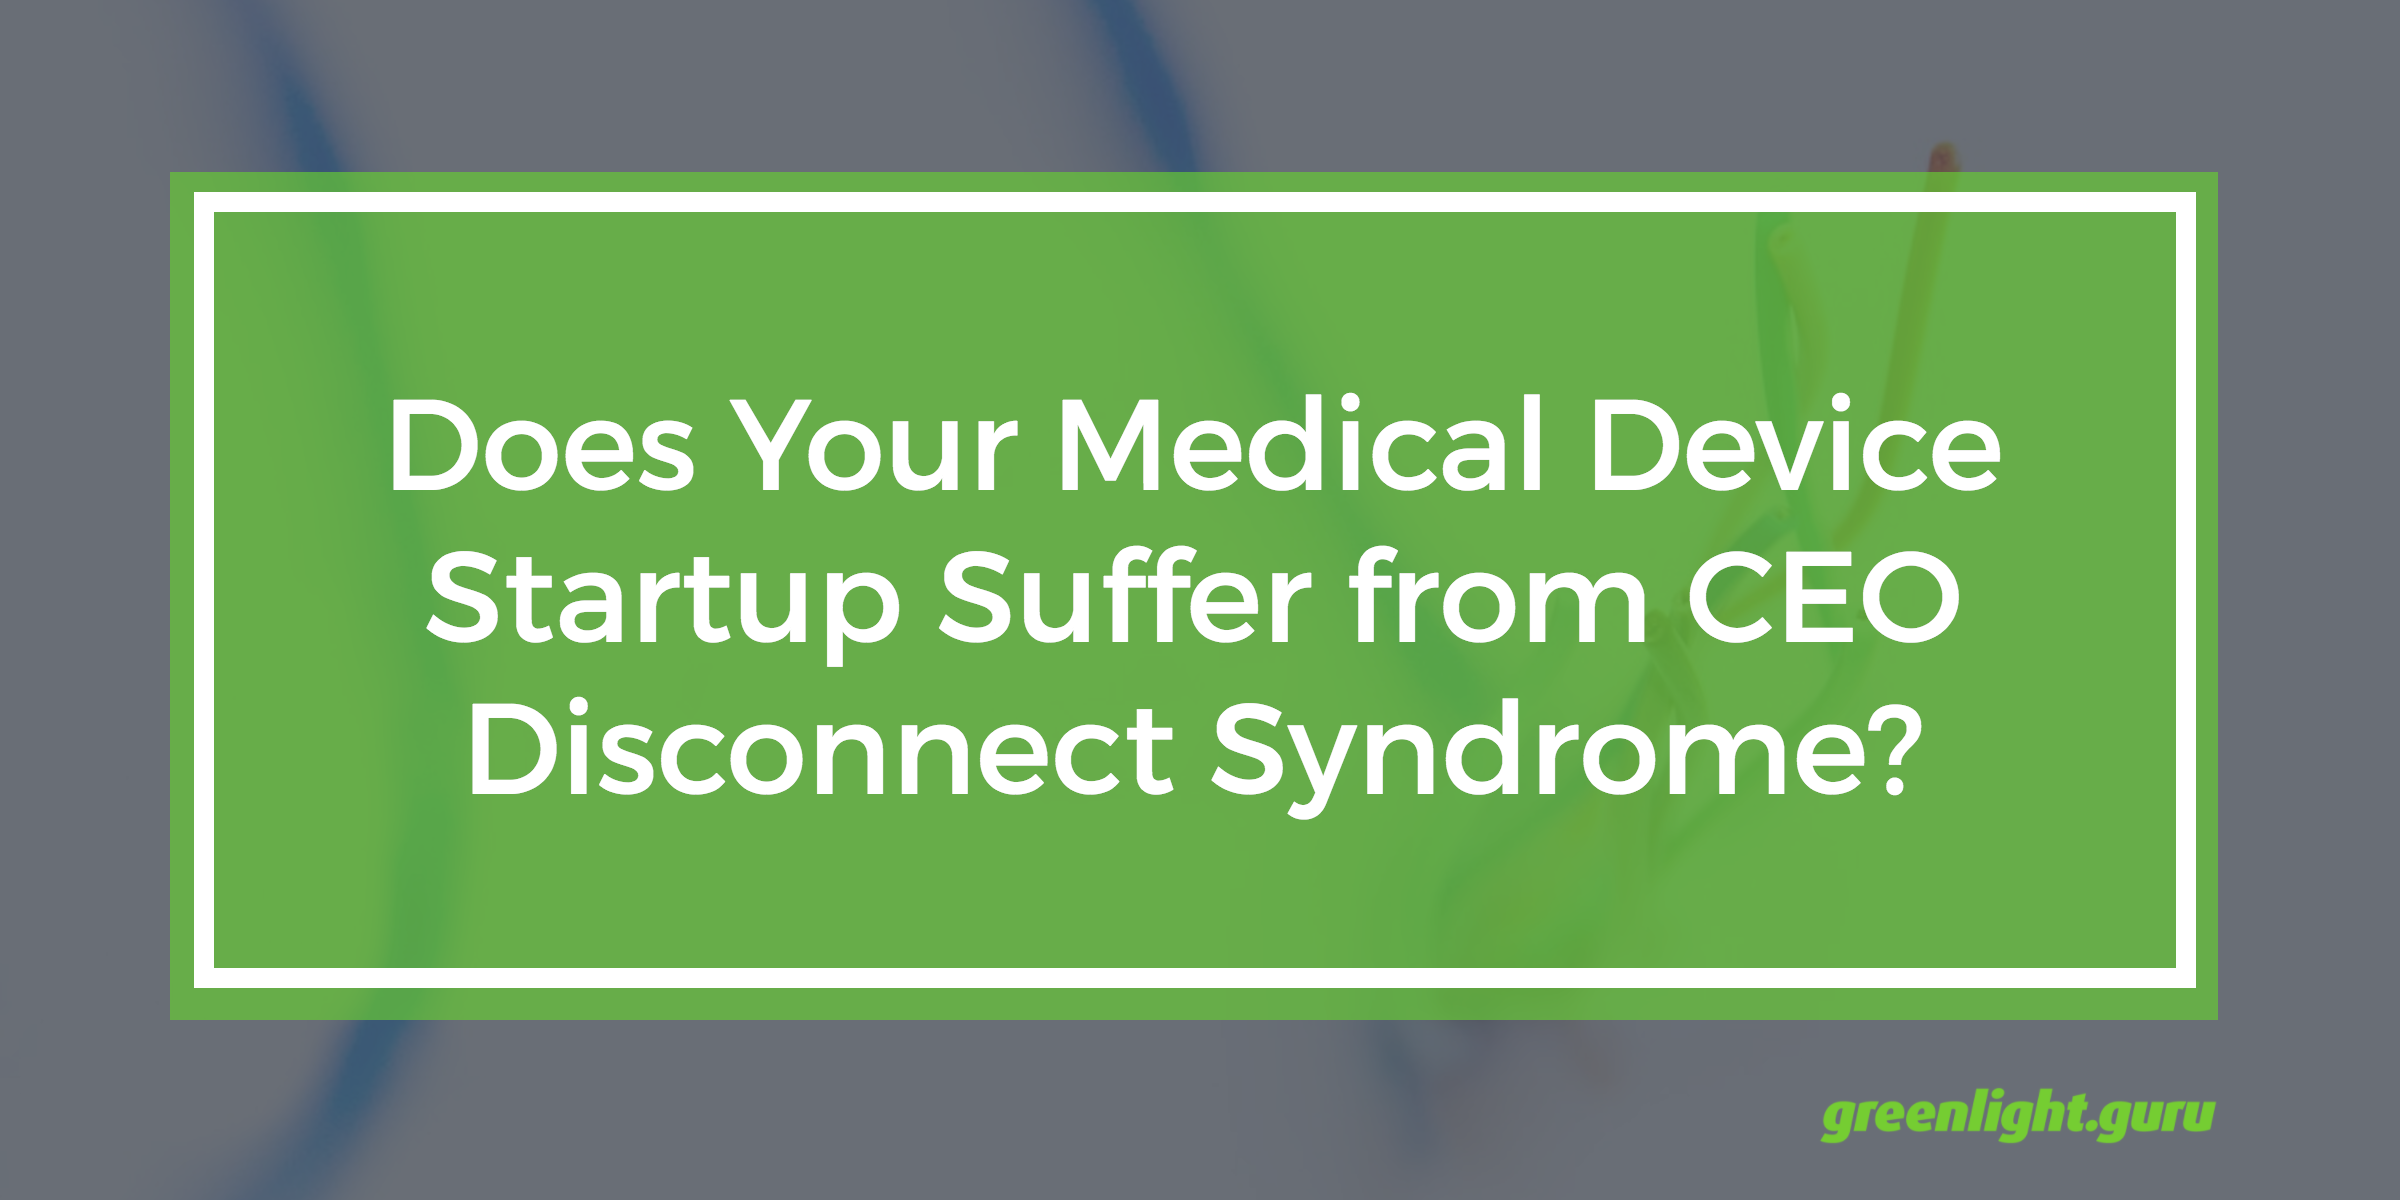 Does Your Medical Device Startup Suffer from CEO Disconnect Syndrome? - Featured Image